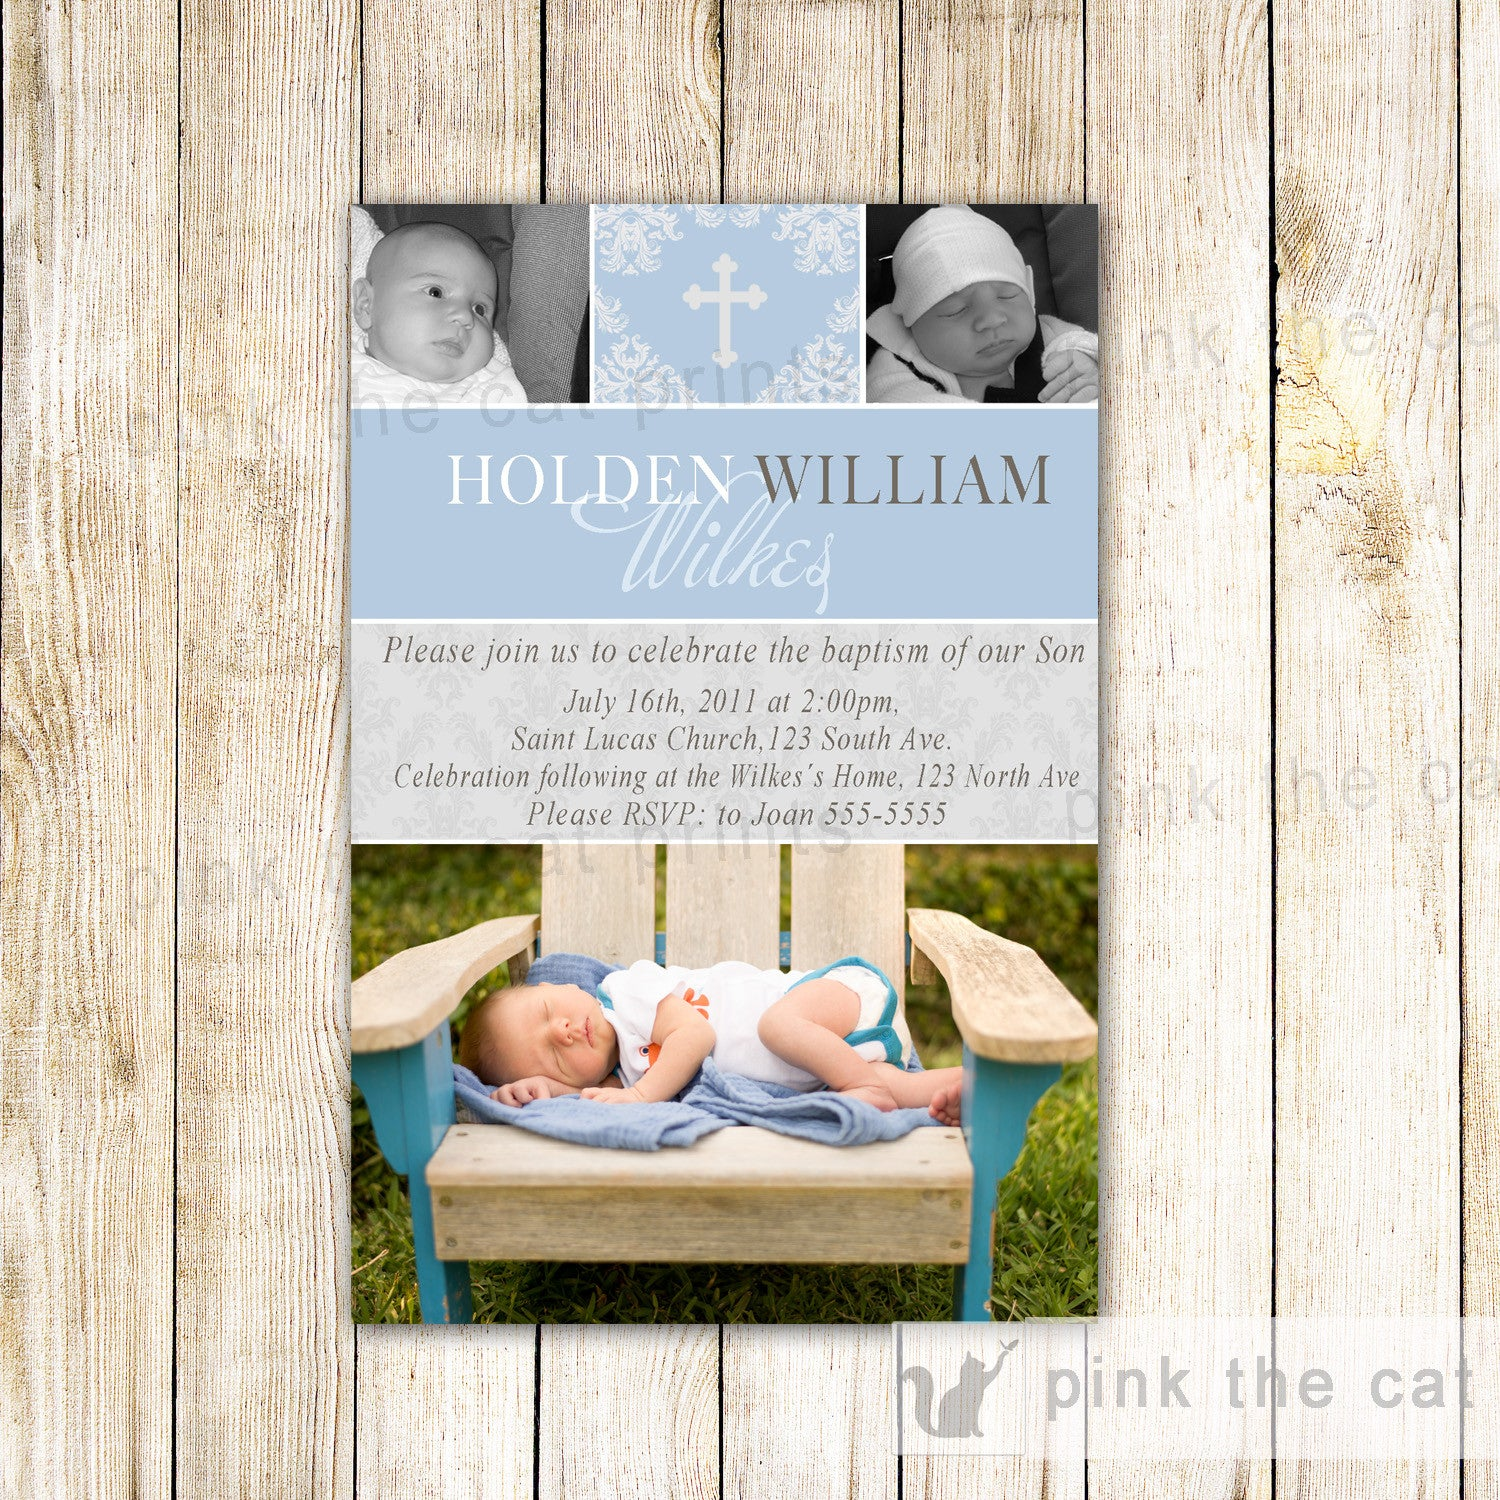 RELIGIOUS INVITATIONS & MORE